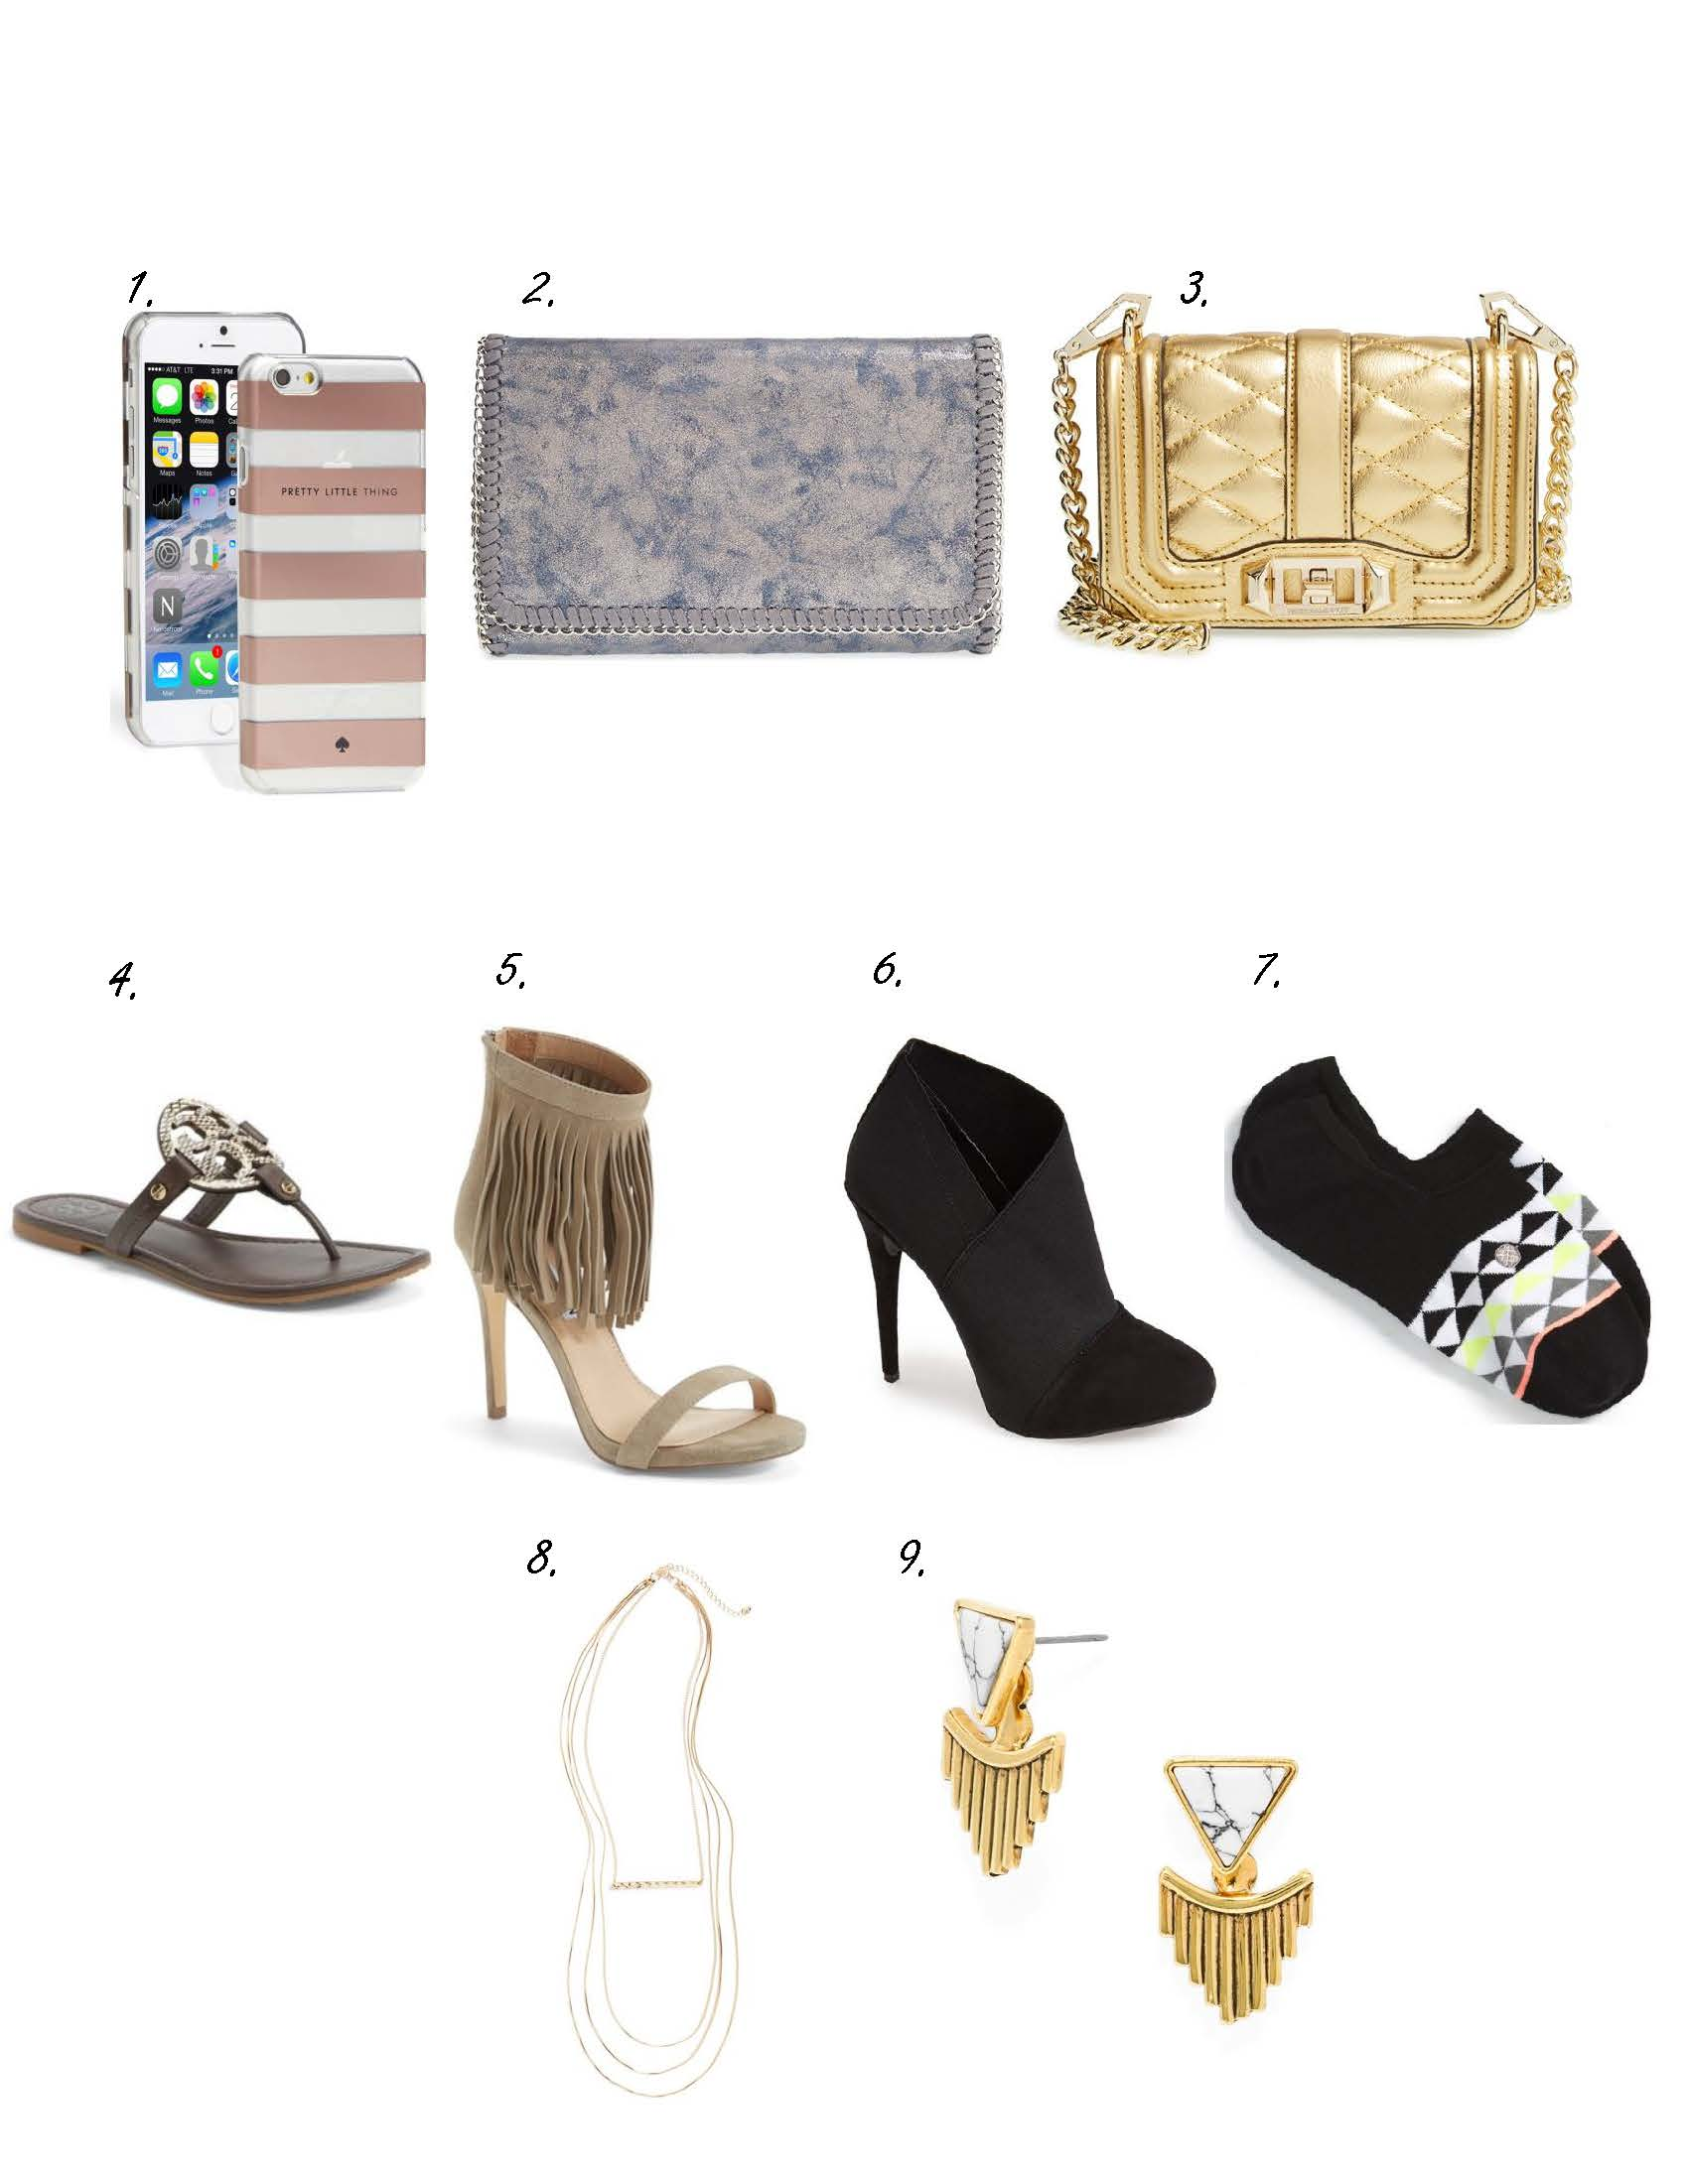 Nordstrom Sale – Accessories